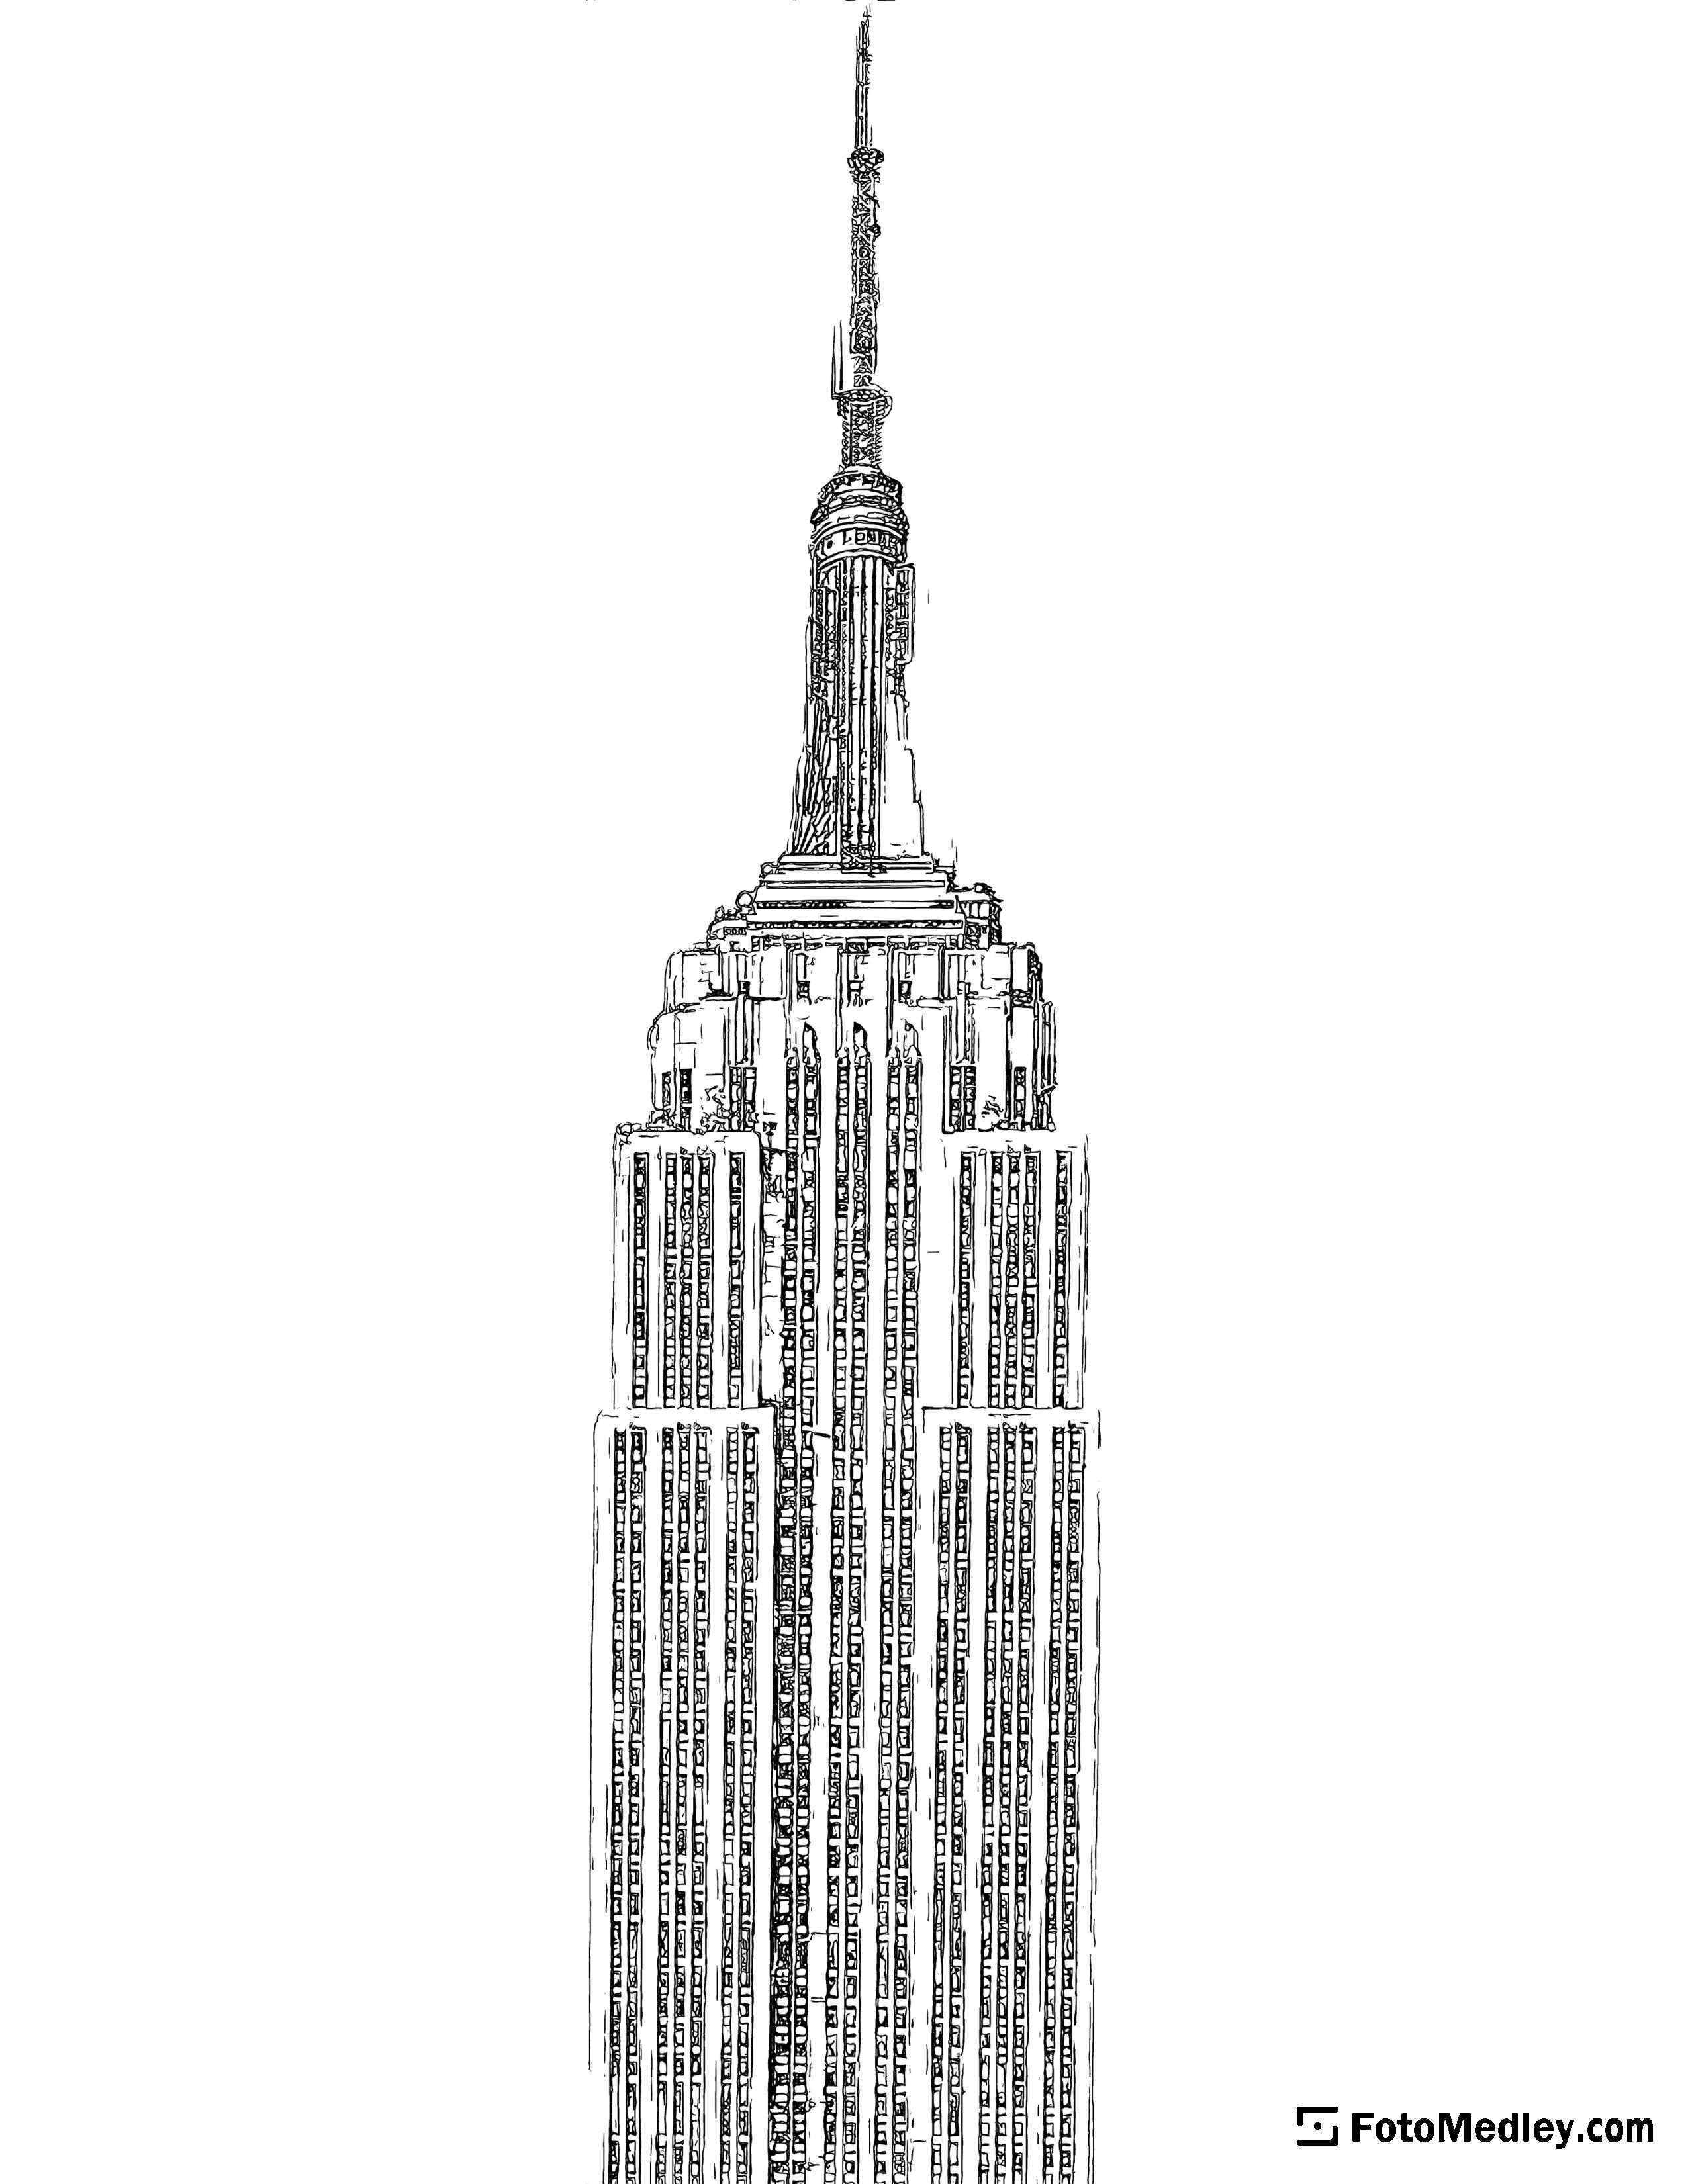 A detailed coloring page of the top portion of the Empire State Building.